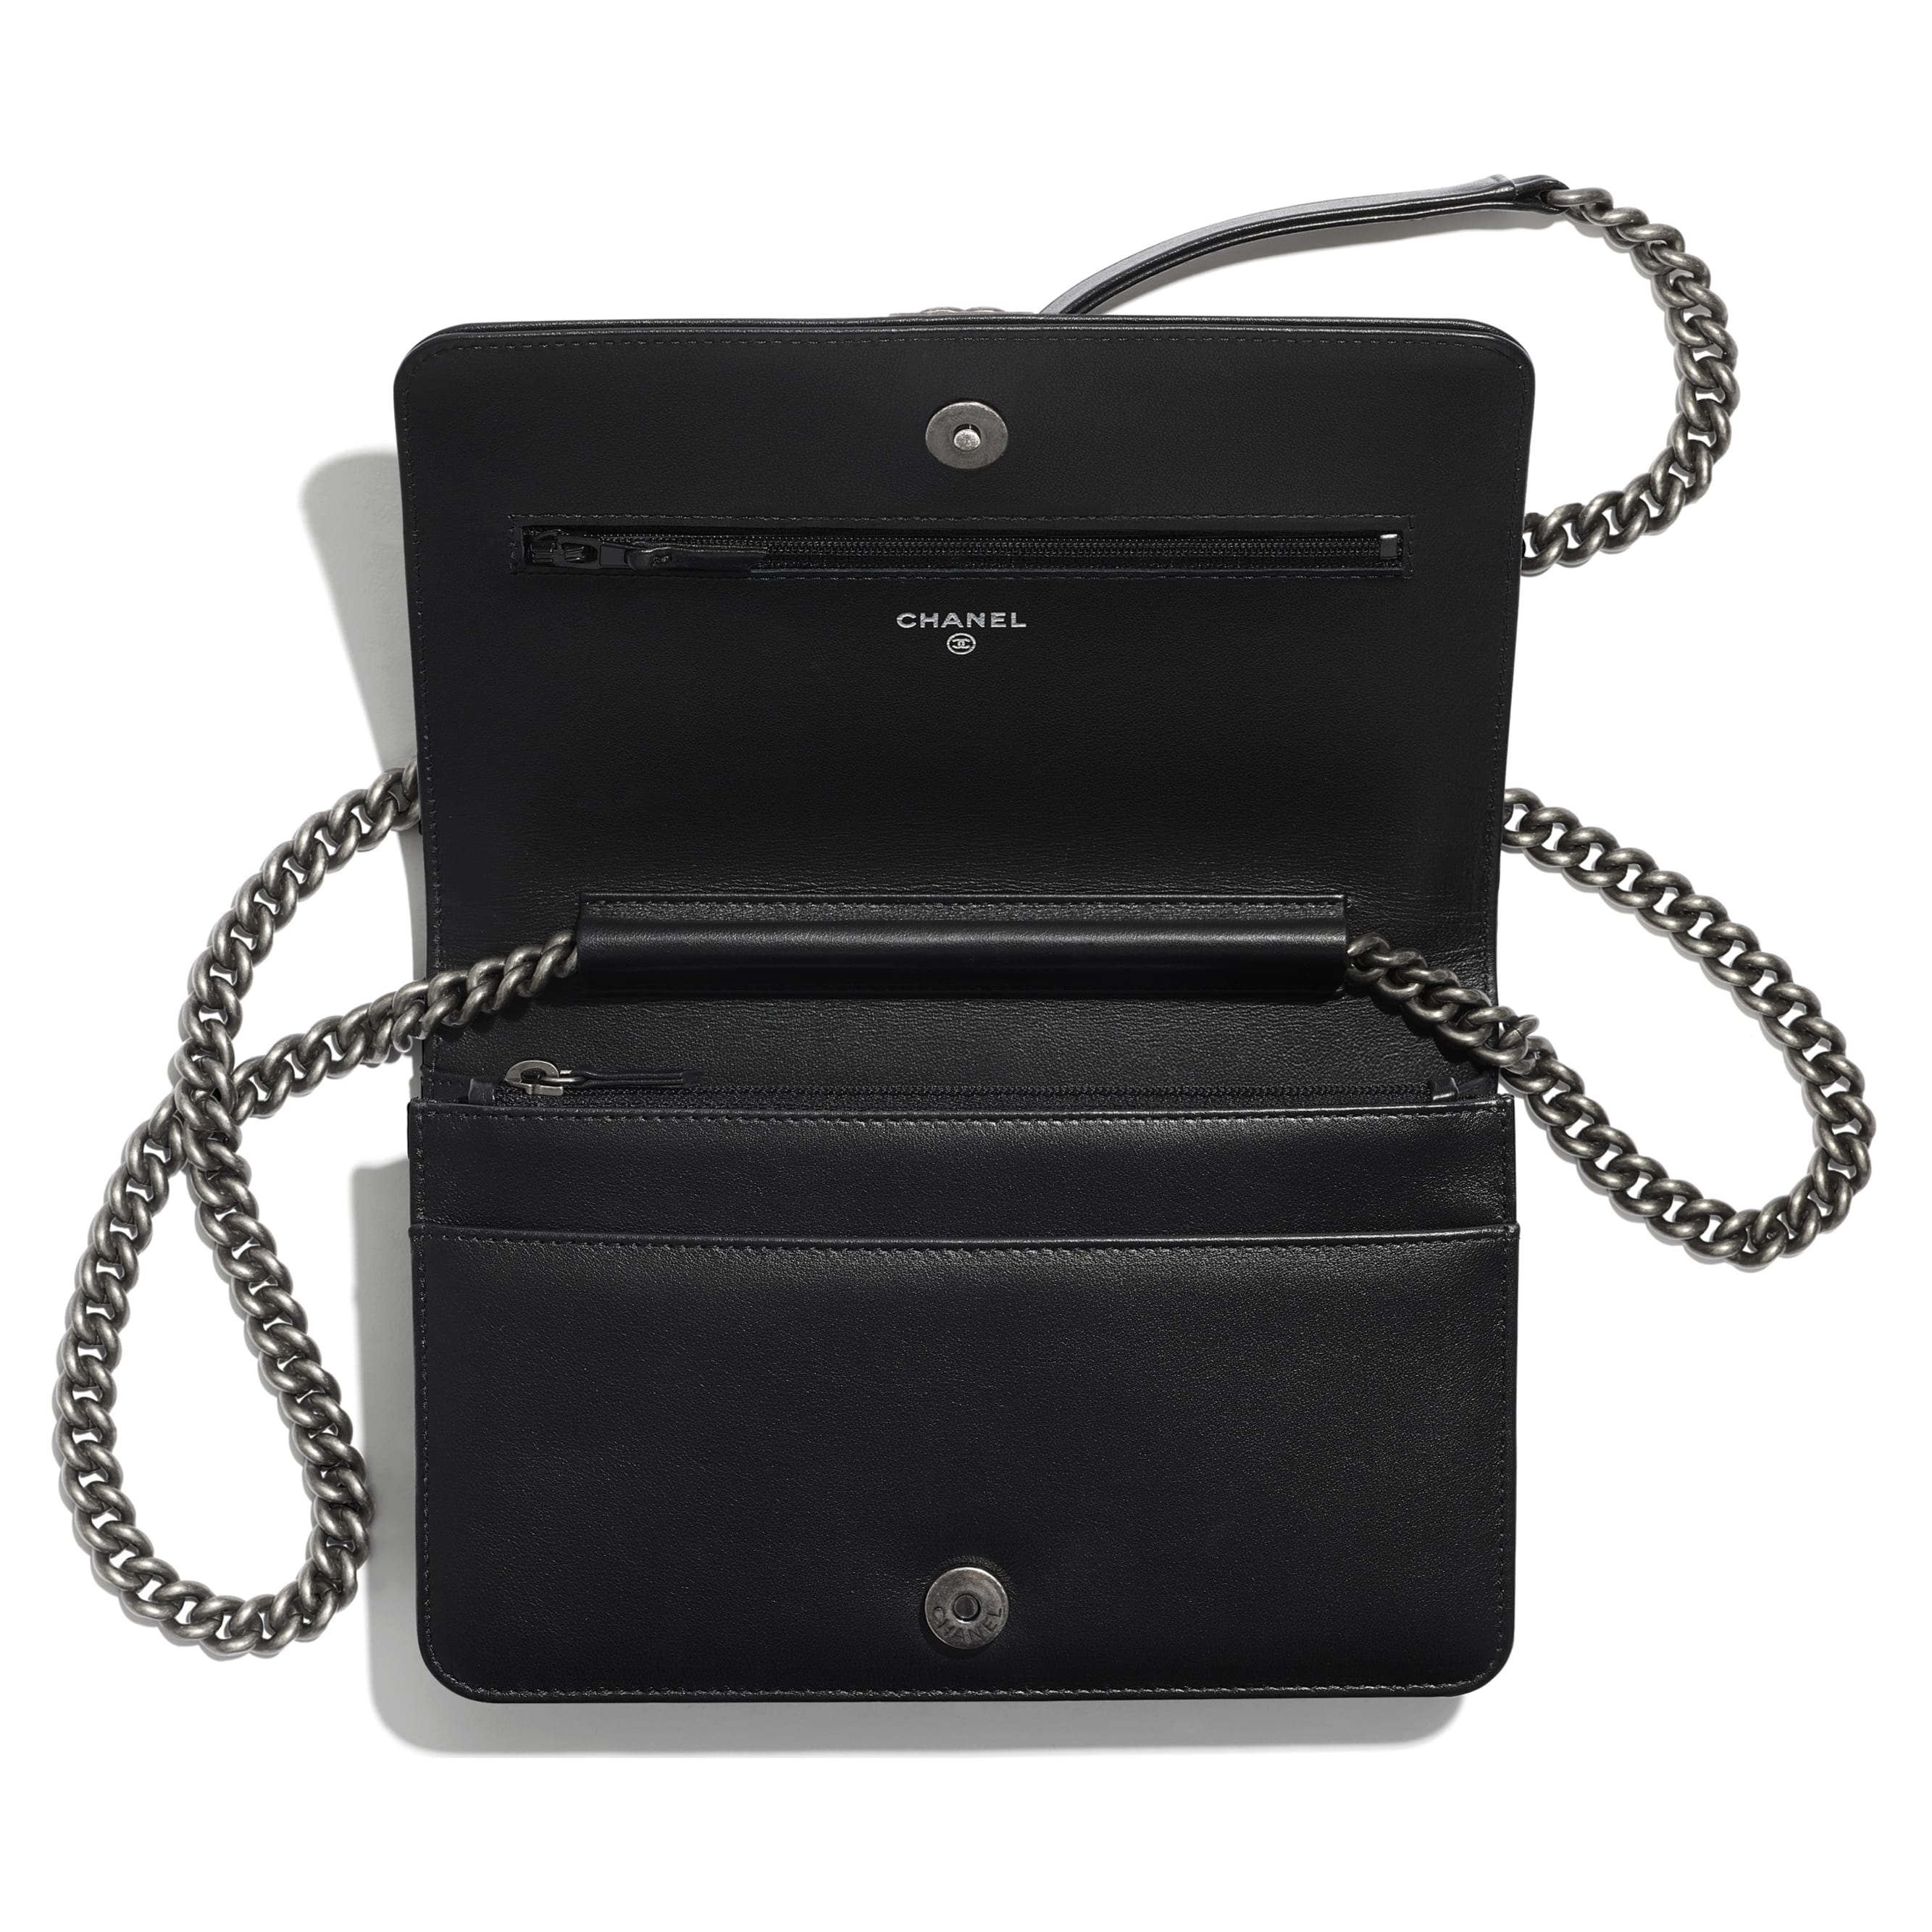 BOY CHANEL Wallet On Chain - Black - Calfskin, Studs, Diamanté & Ruthenium-Finish Metal - CHANEL - Other view - see standard sized version